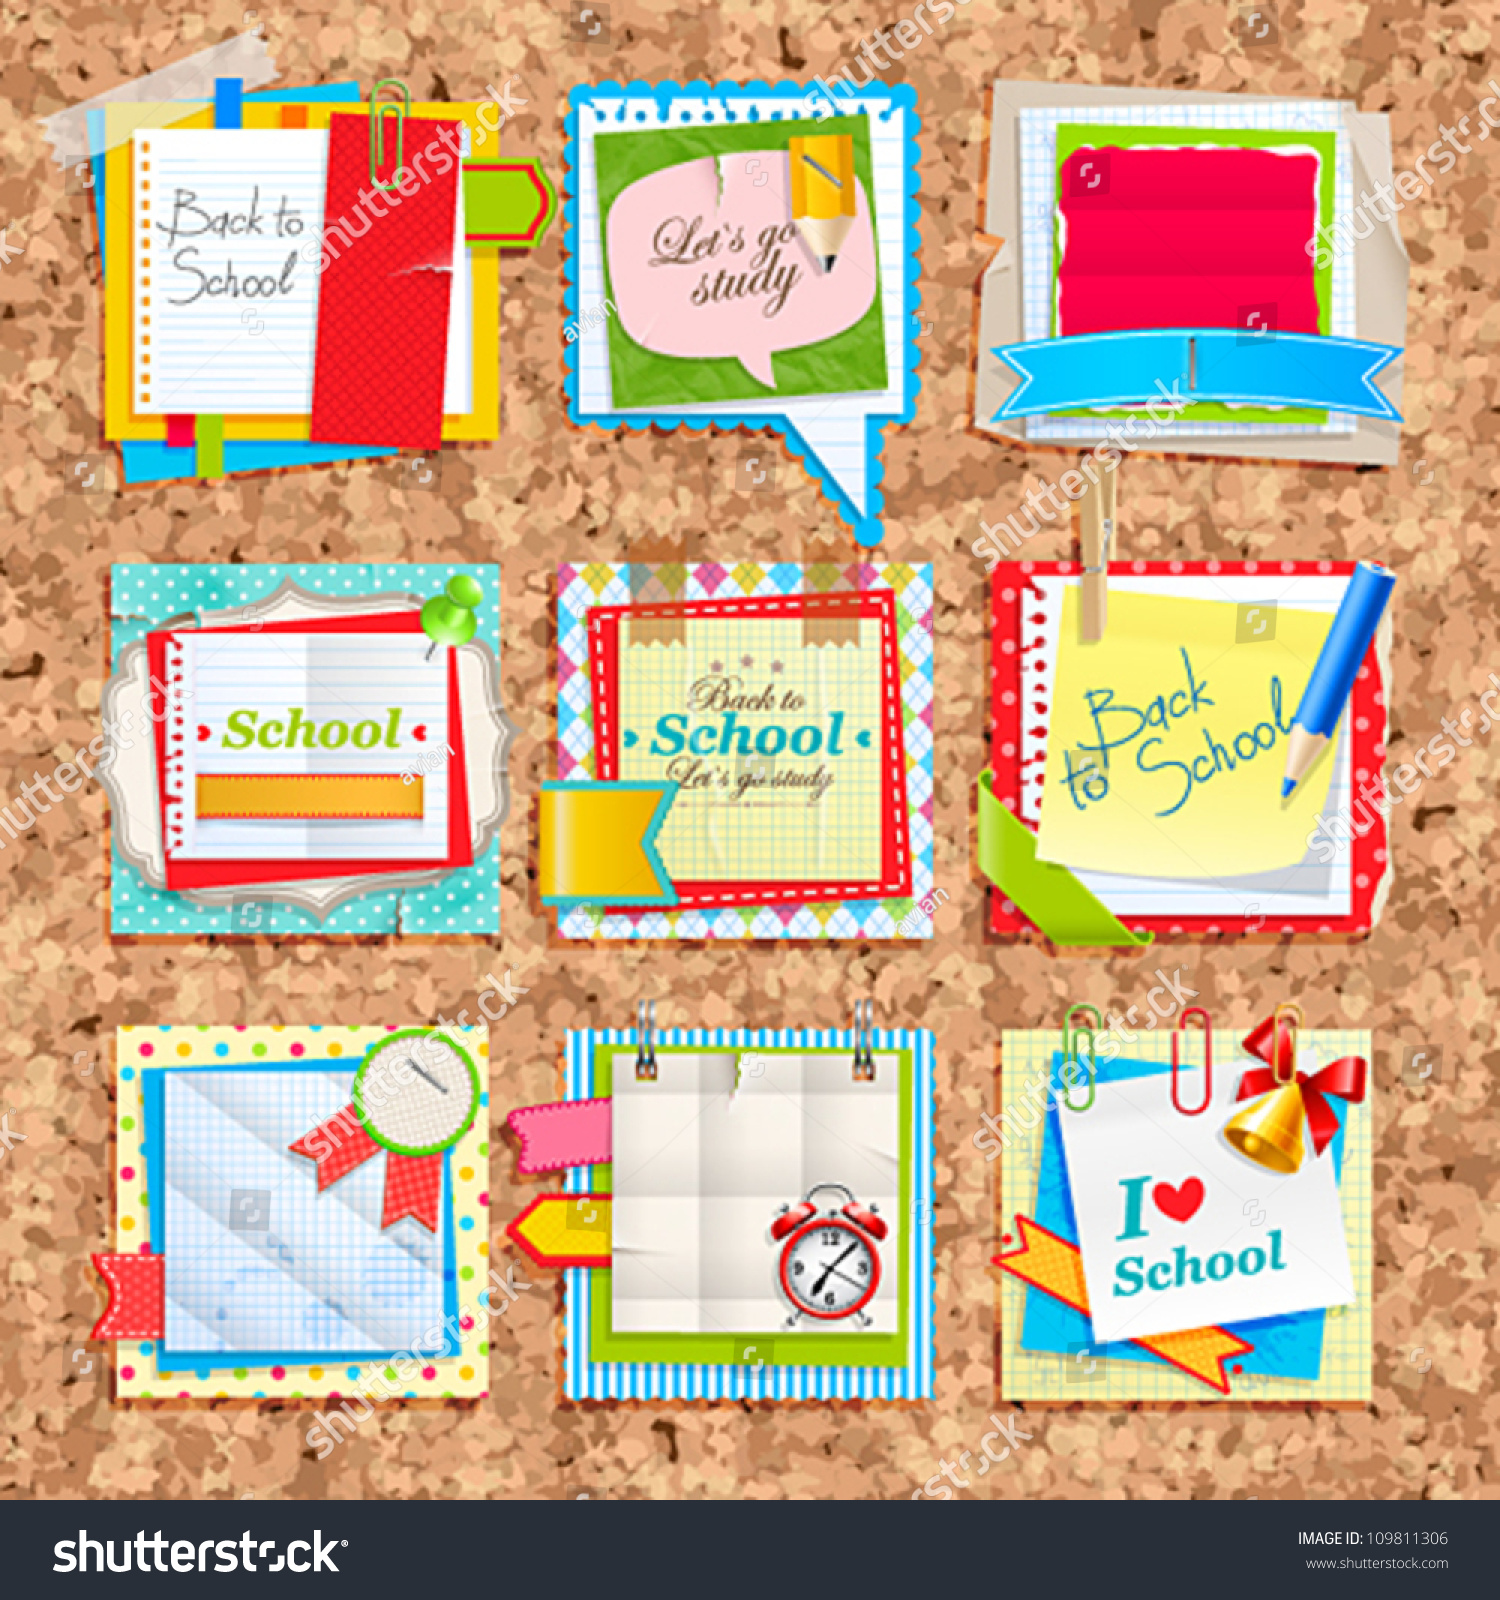 Scrapbook paper note - Paper Notes On Cork Board Scrapbooking Elements